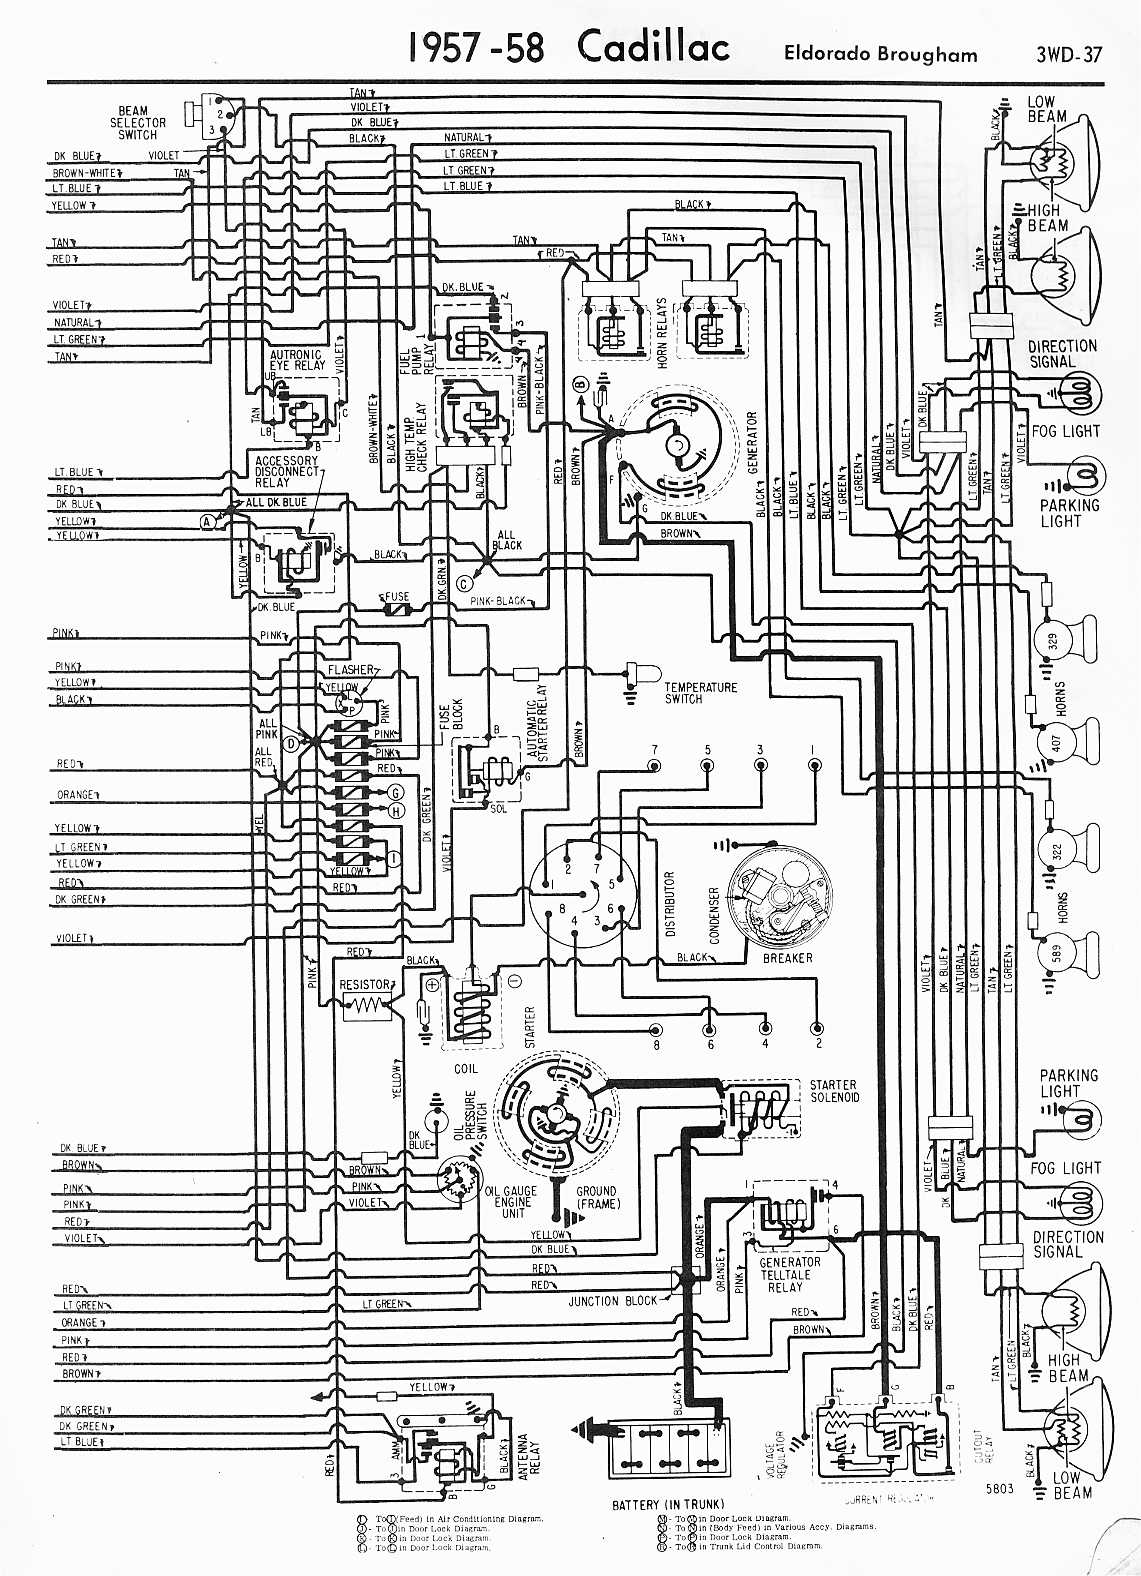 hight resolution of cadillac eldorado wiring diagram data diagram schematic cadillac eldorado wiring diagram